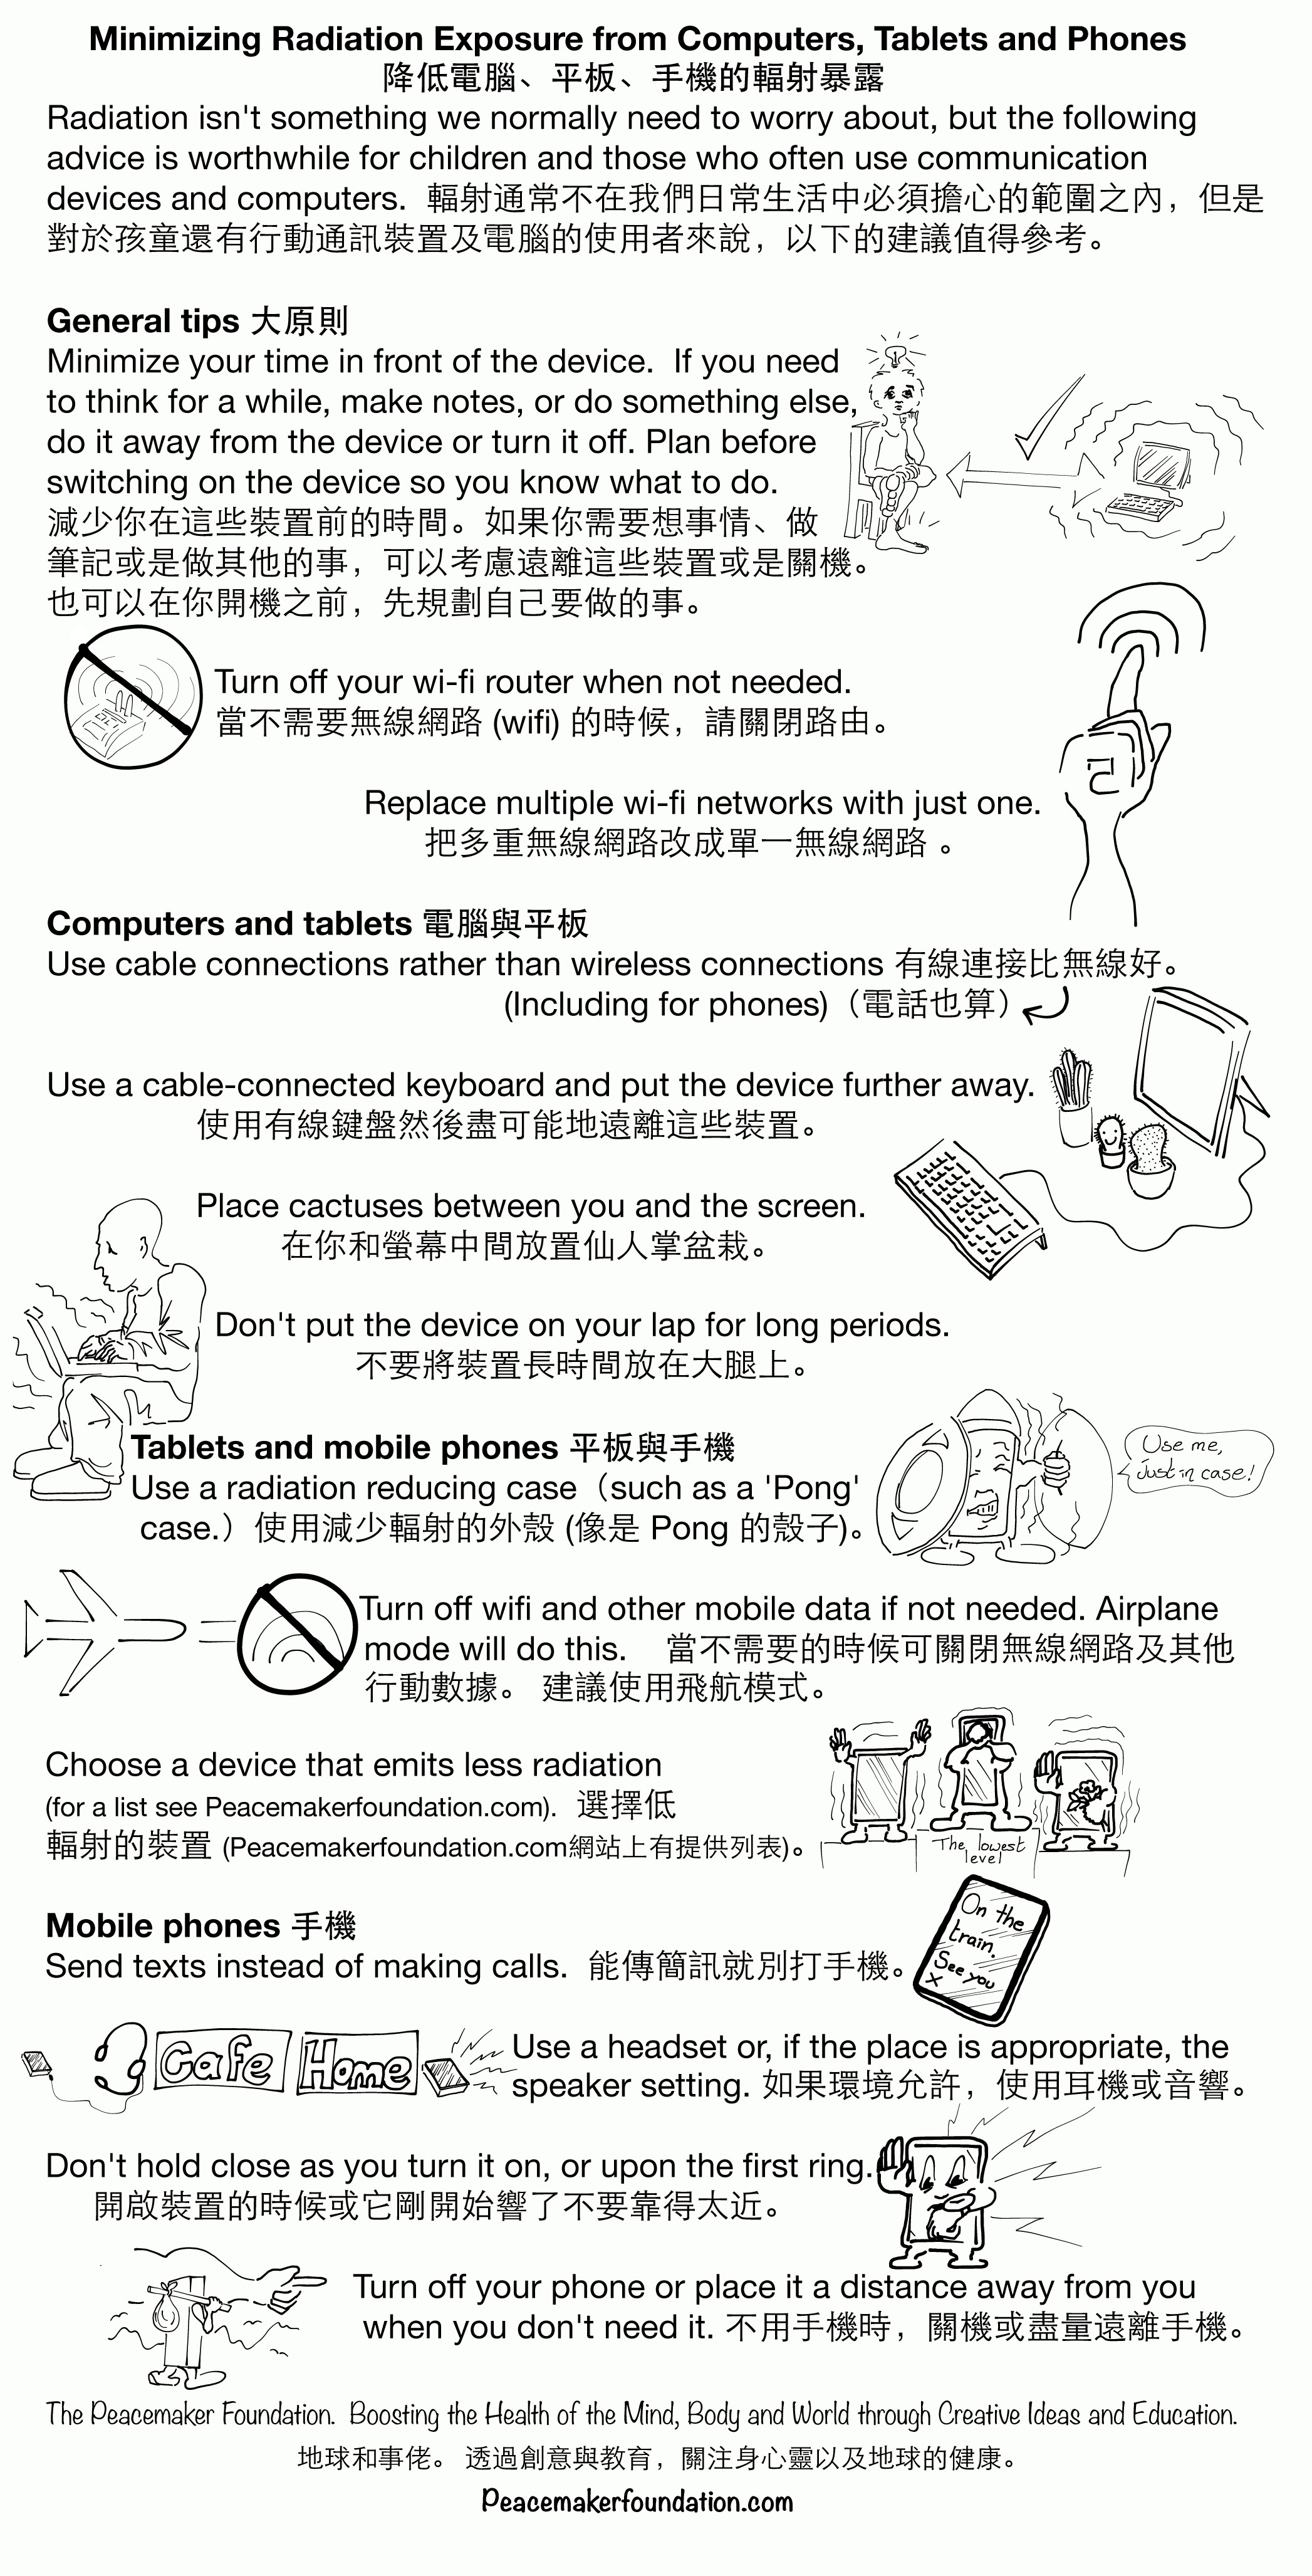 Tips on how to reduce radiation from electronic devices